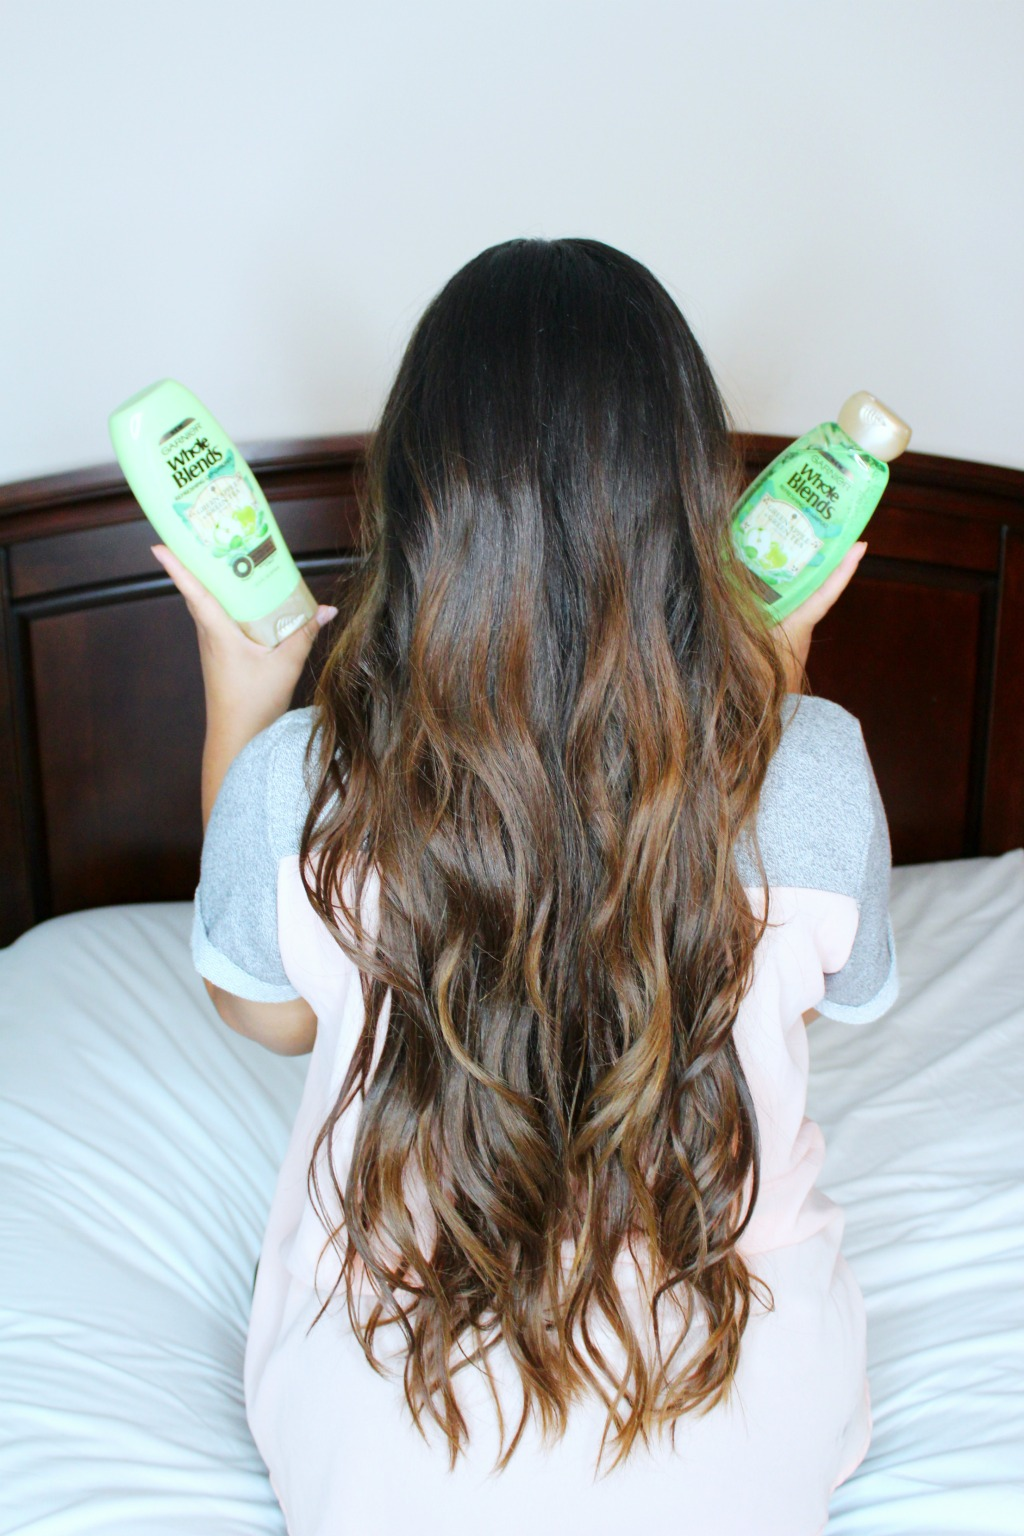 Keeping My Long Hair Healthy With Garnier Whole Blends